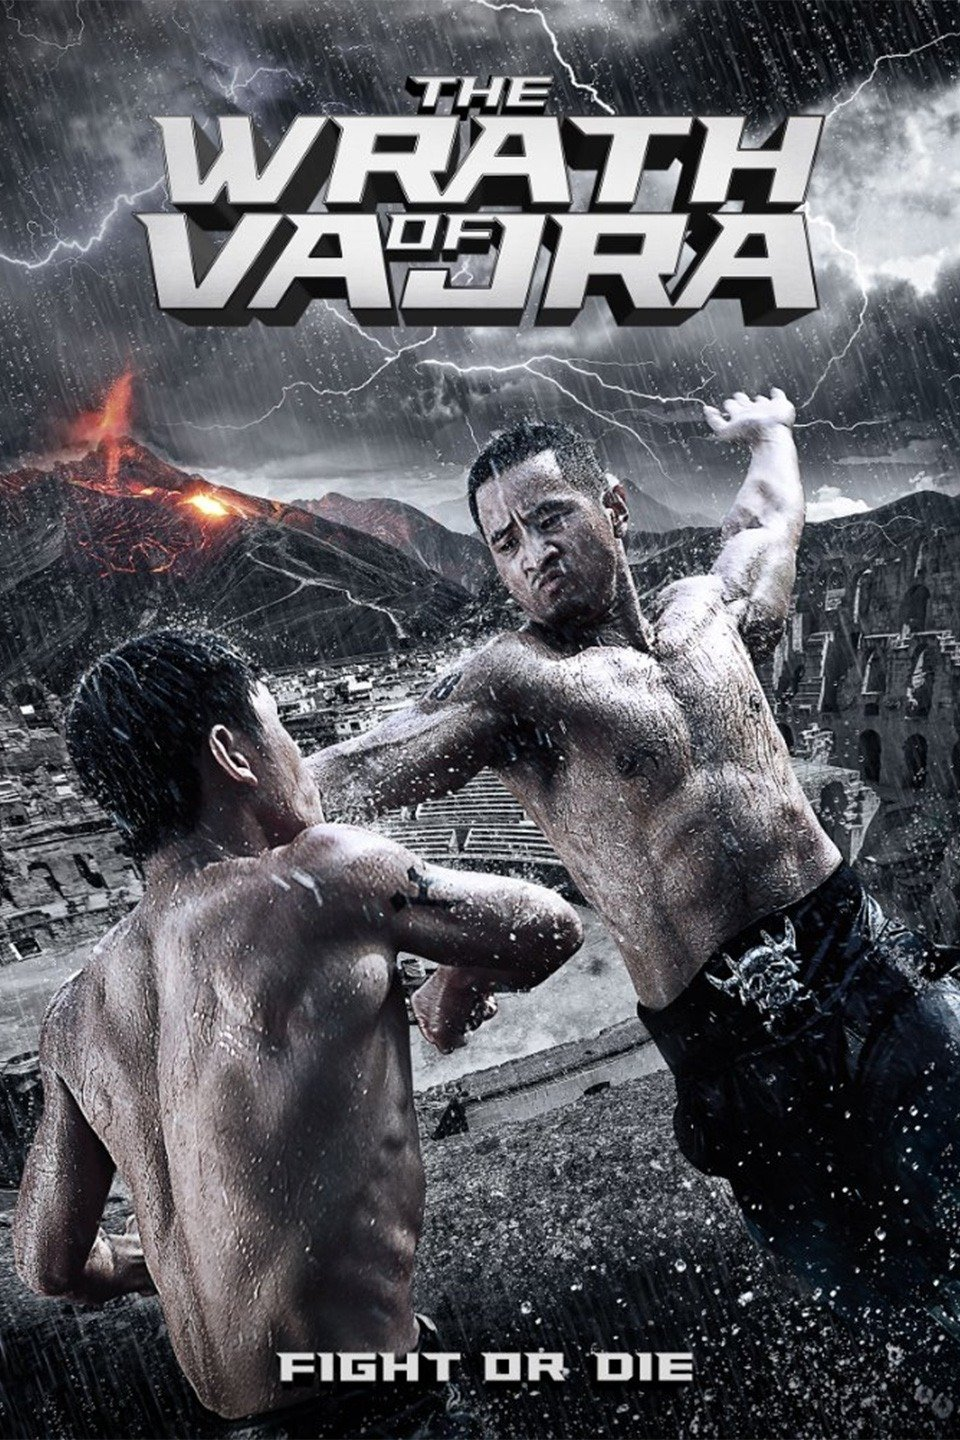 The Wrath of Vajra-The Wrath of Vajra